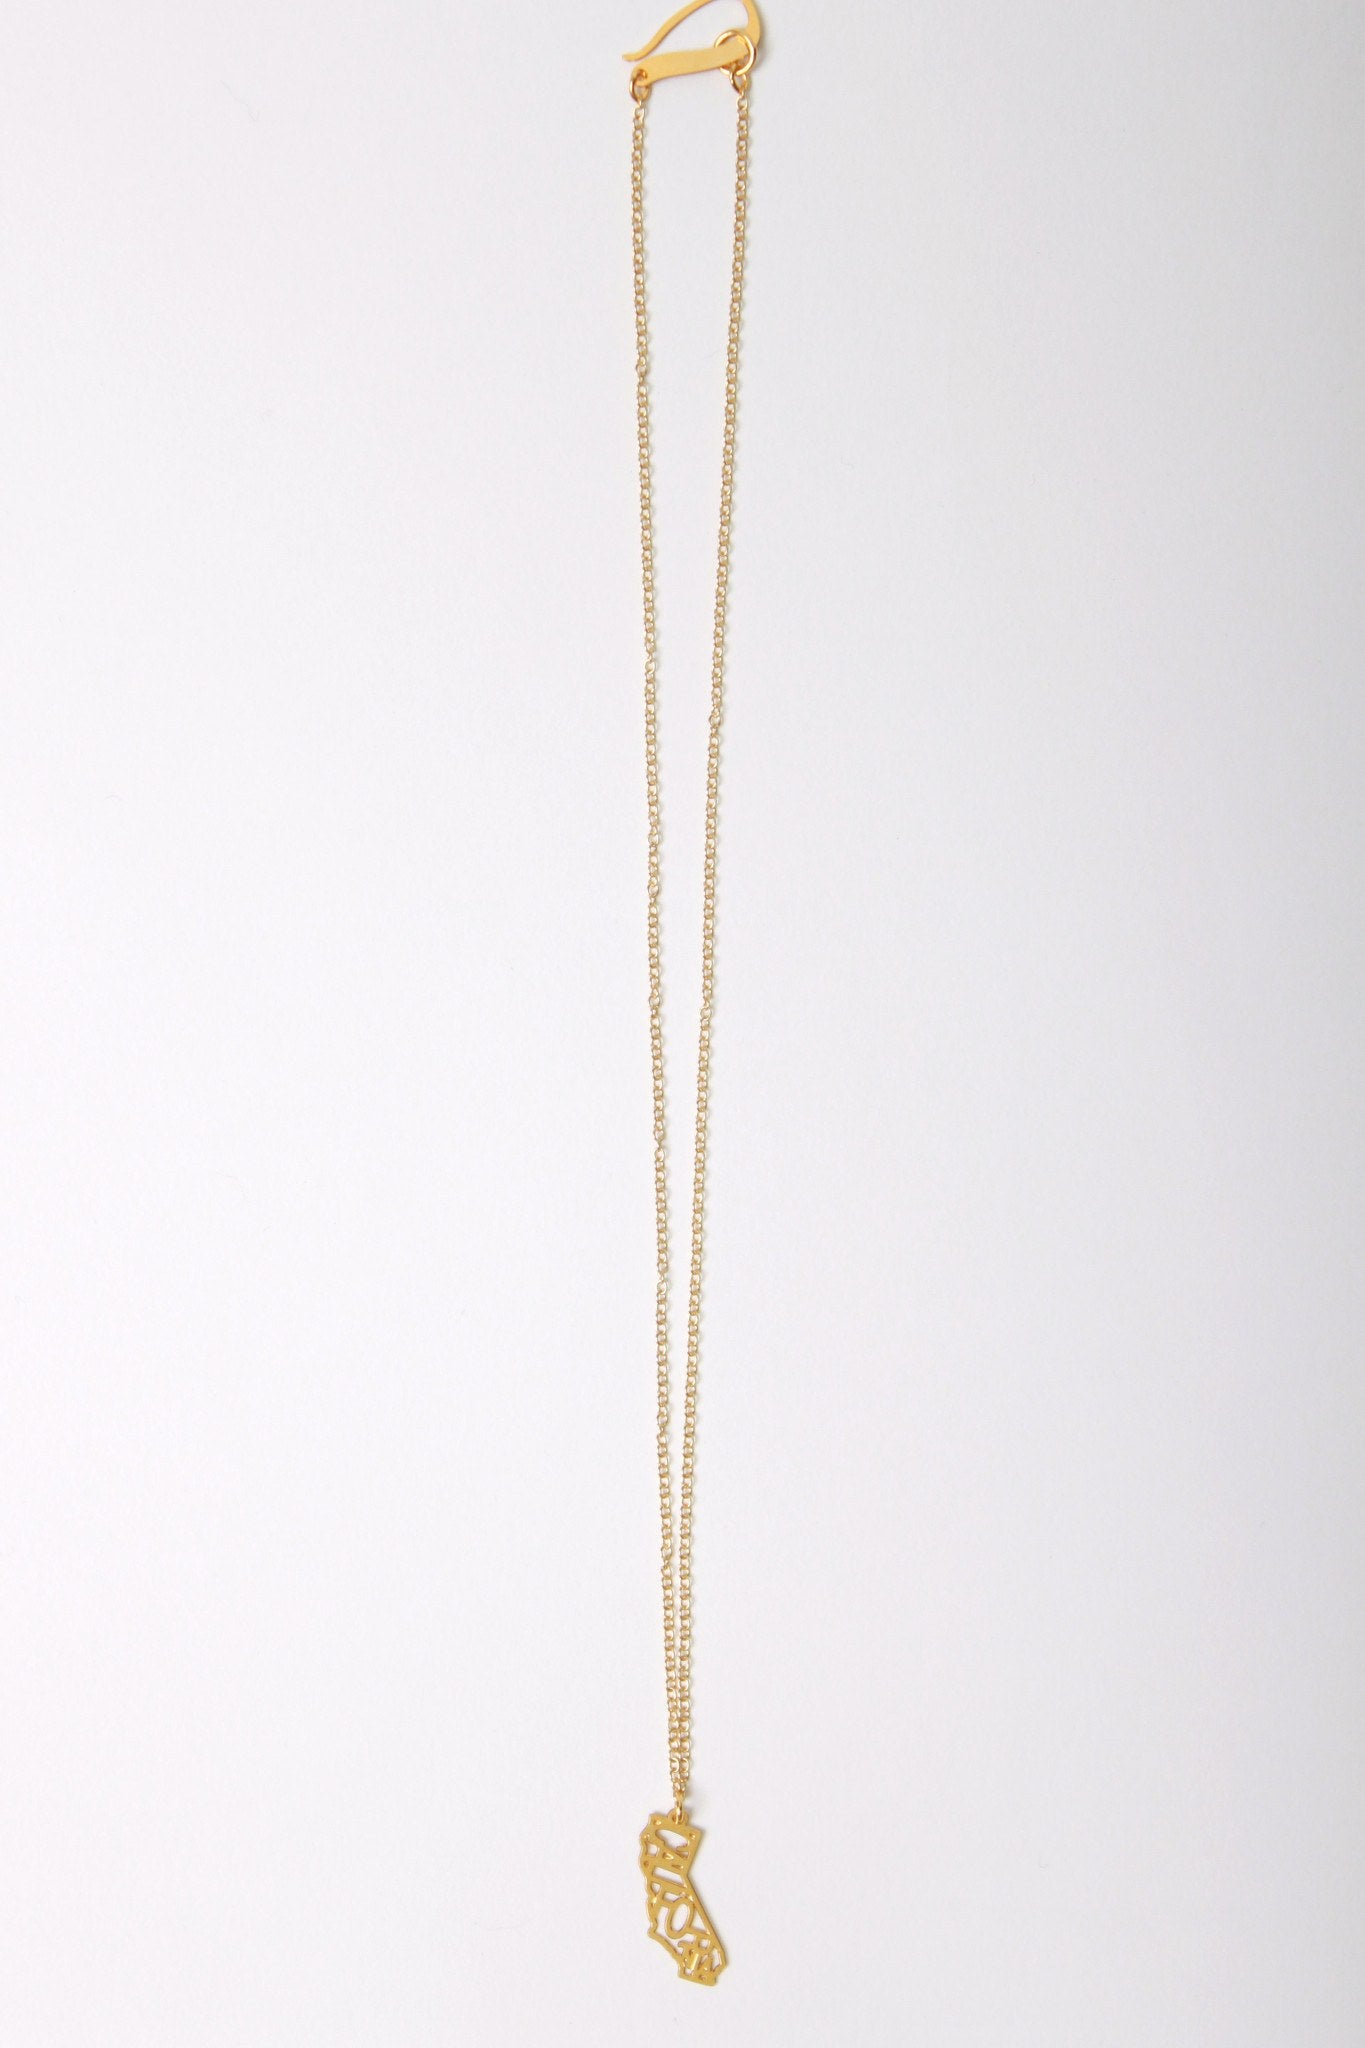 Kris Nations, California State Pride Necklace - Viva Diva Boutique